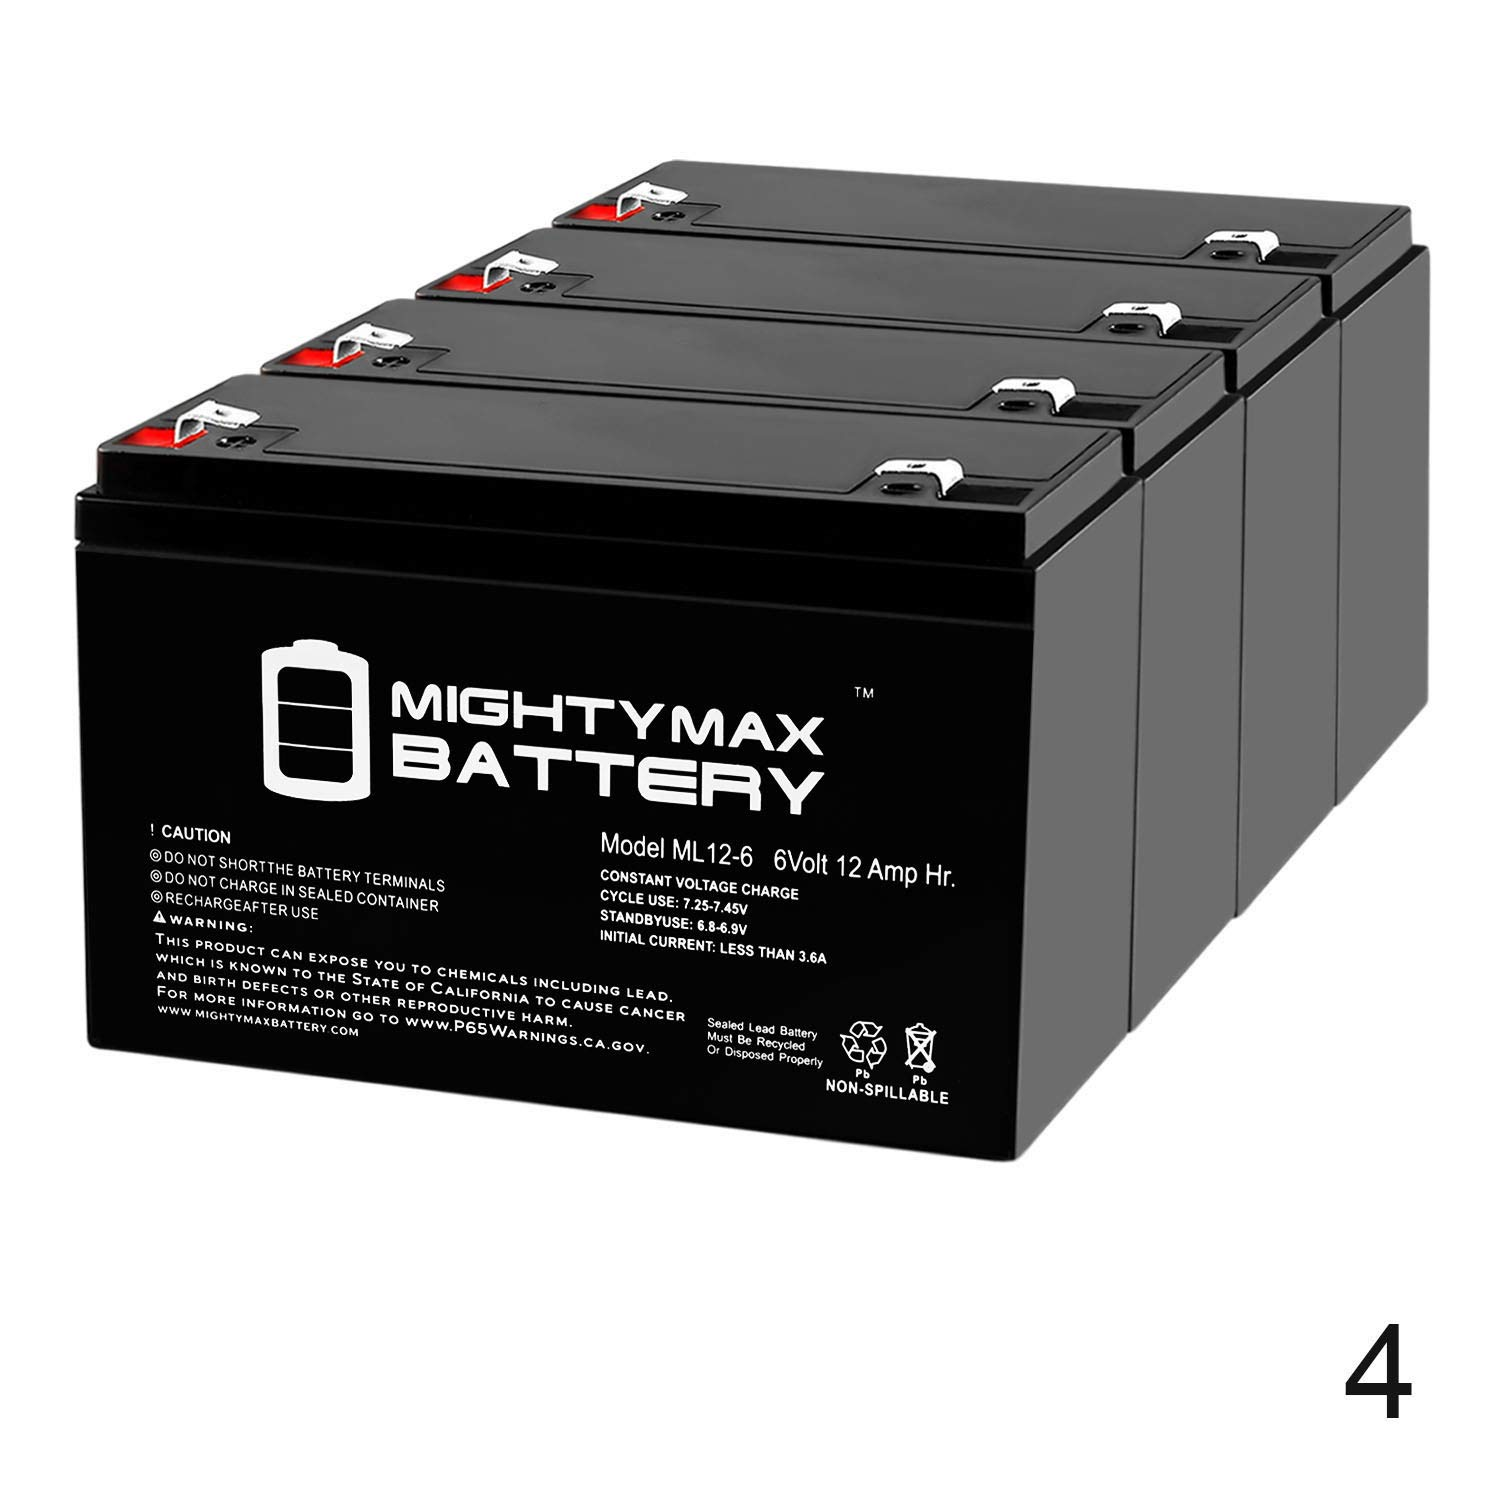 Mighty Max Battery 6V 12AH F2 SLA Replacement Battery for Vision CP6120, CP6120-4 Pack Brand Product by Mighty Max Battery